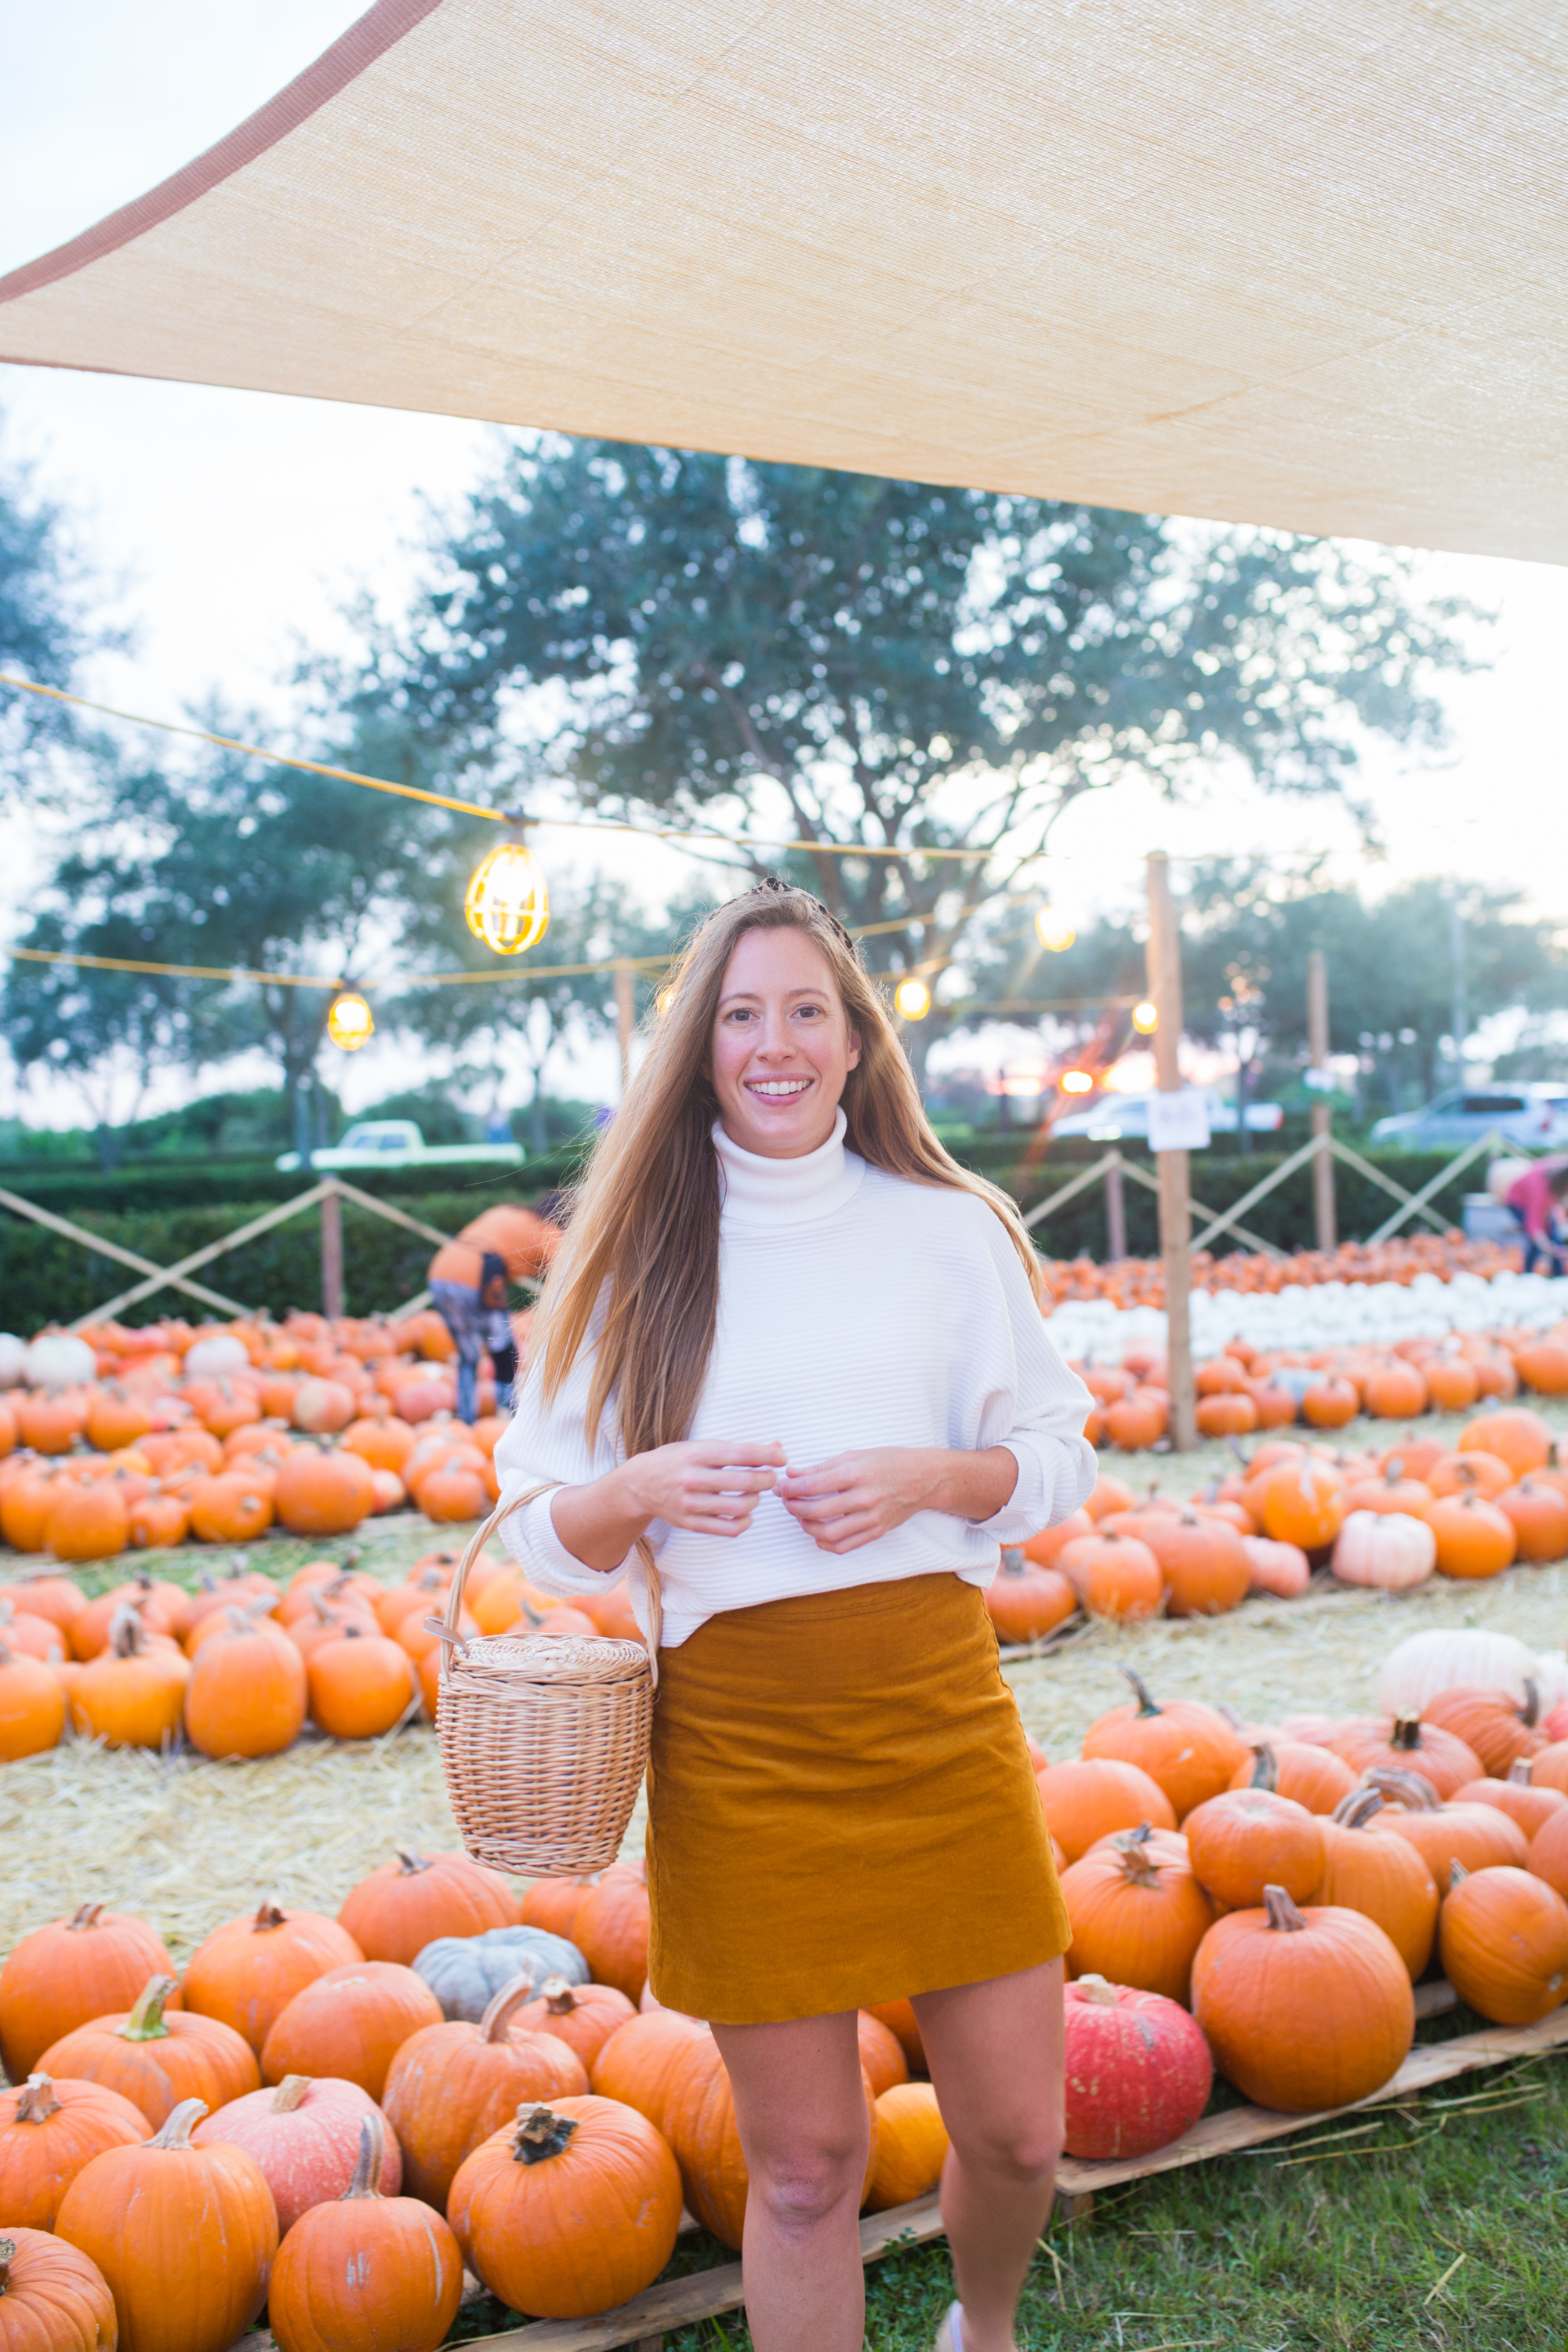 Fall Transition Outfit / Warm Weather Fall Outfits / Fall Outfits for Hot Weather / Florida Fall Outfits Women / Leopard Scrunchie / Corduroy Skirt / Knit Sweater / Sunshine Style - Florida Fashion Blogger By Katie